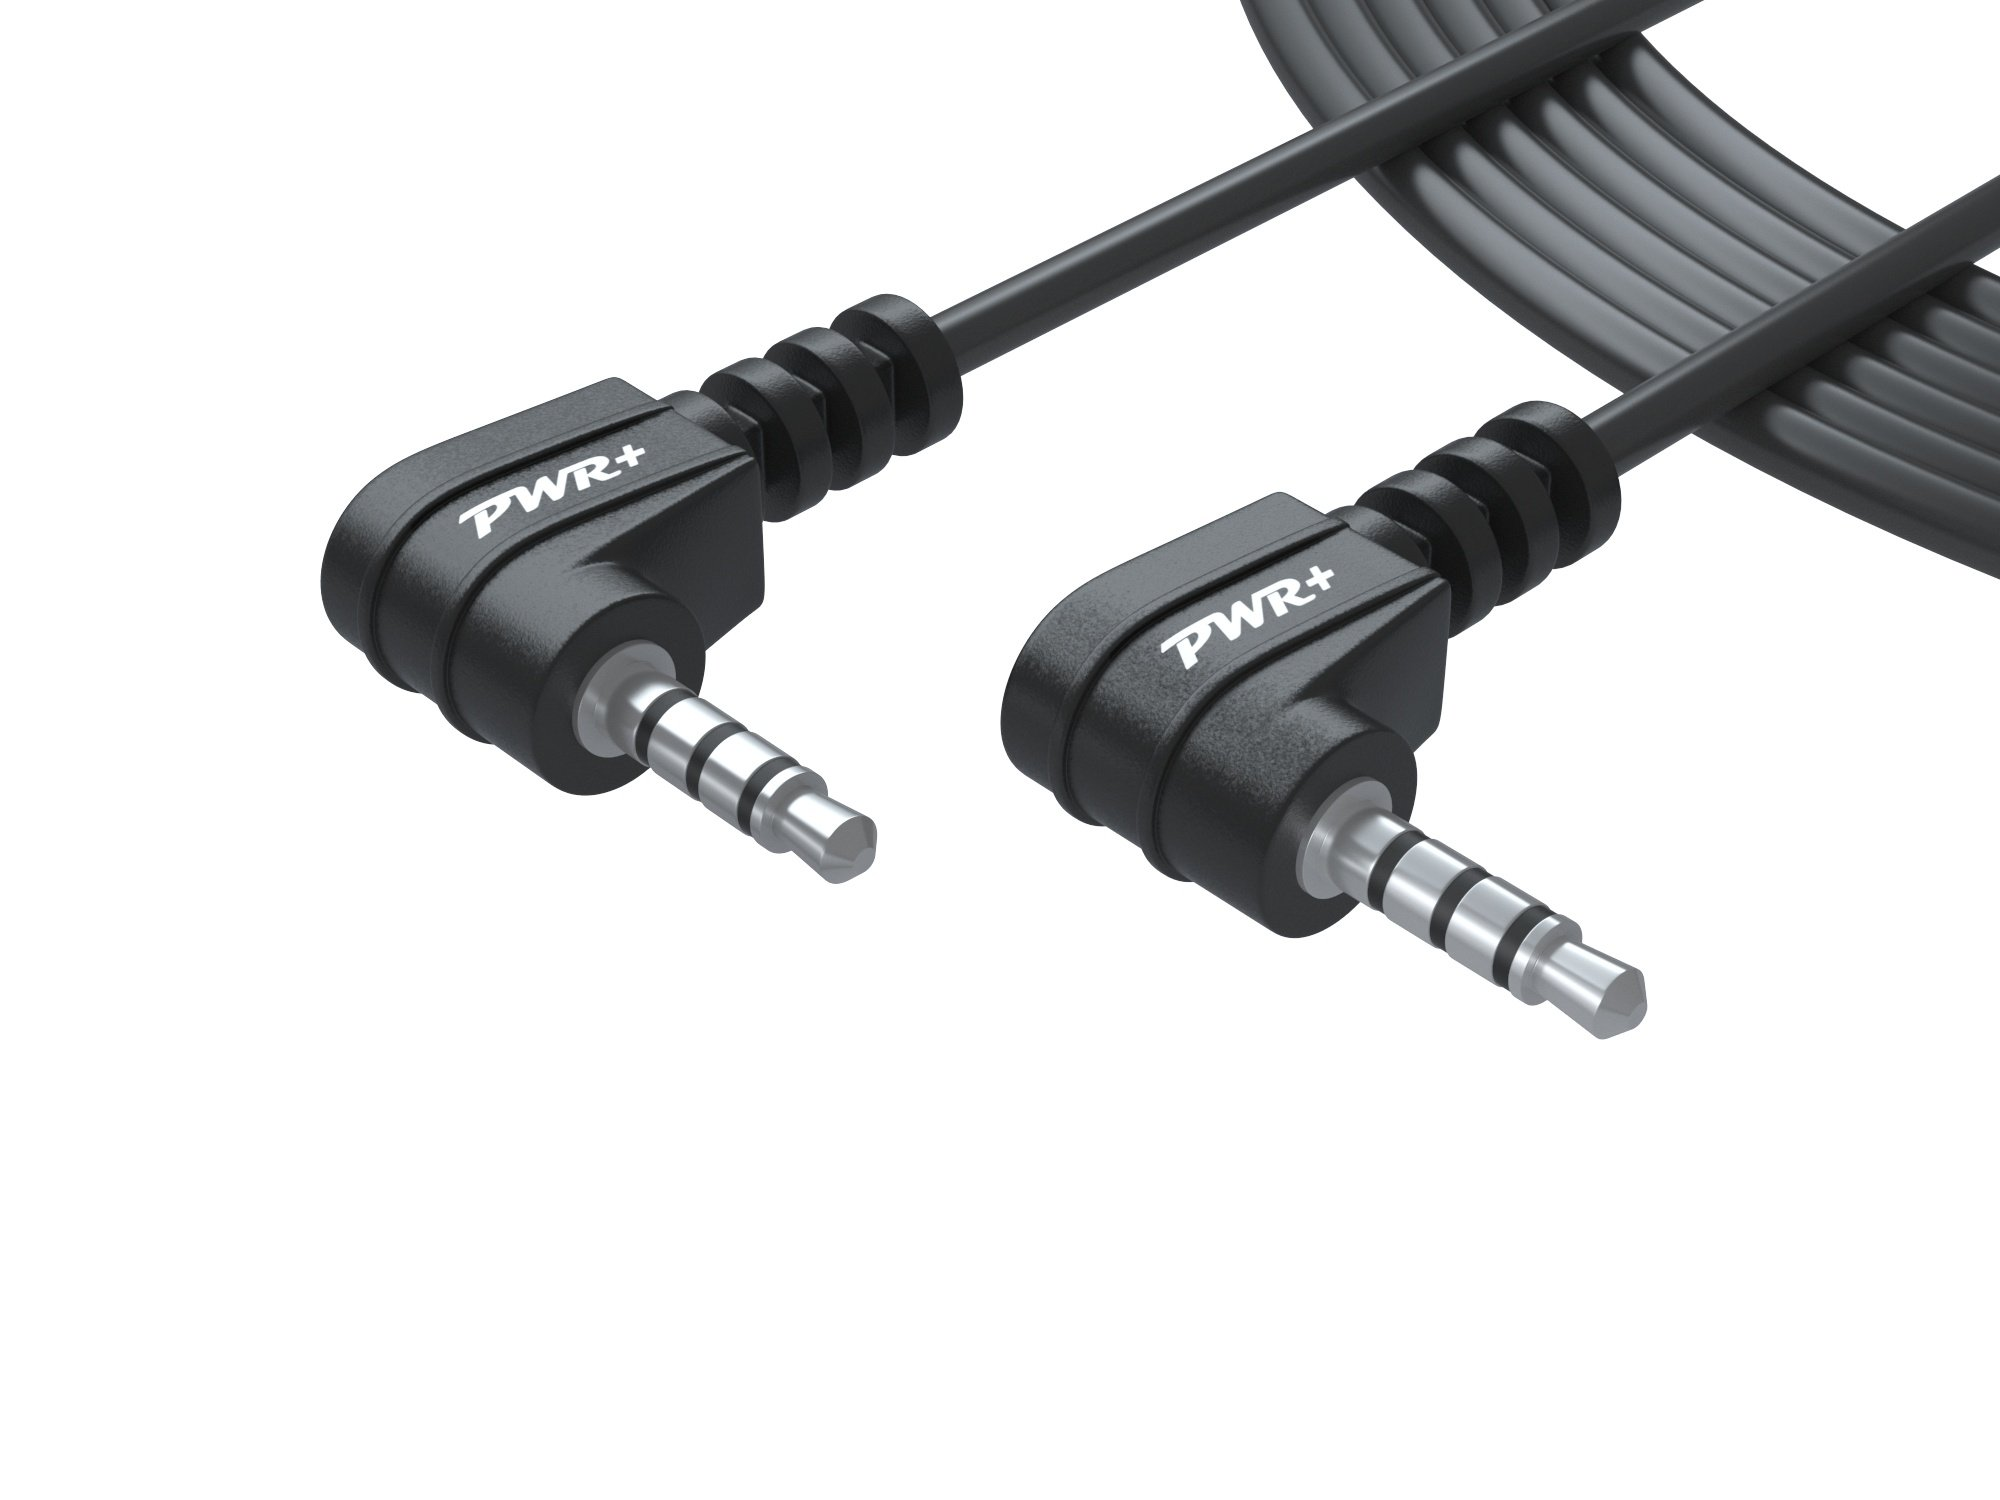 Pwr 6 Ft Cord 3.5mm Screen-to-Screen Audio and Video AV Cable for Portable DVD Player Dual Screen: Compatible with Philips, Insignia, Sony, Impecca, Aduiovox, RCA, Proscan, DBPower, Ematic, Naviskauto